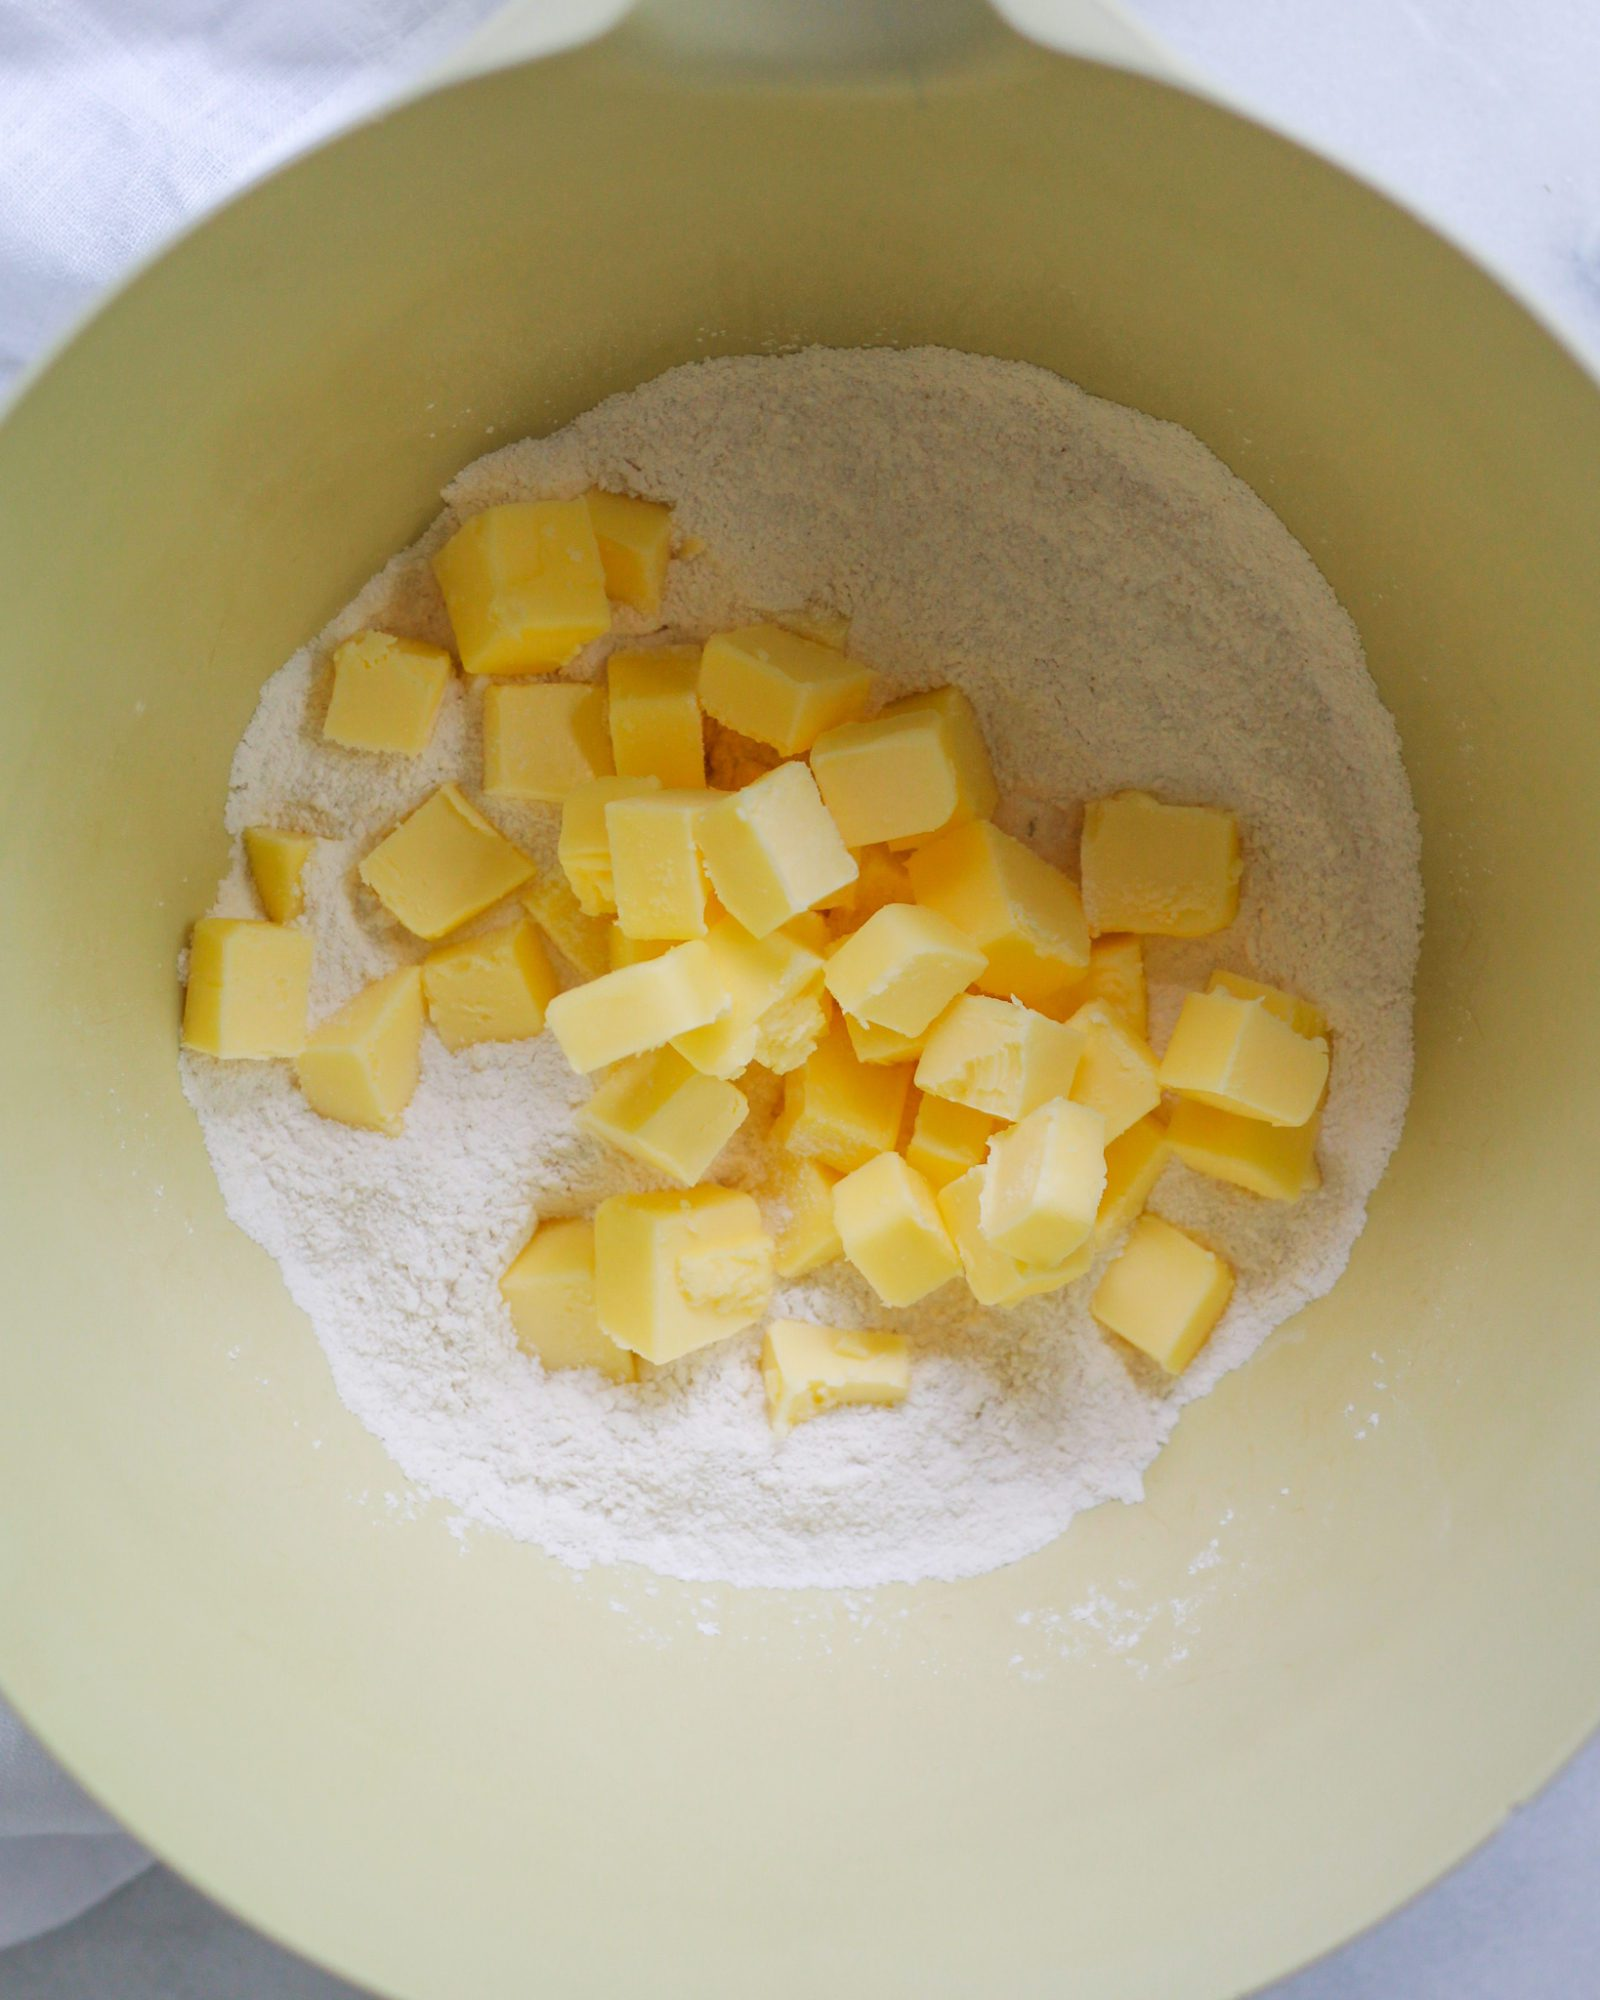 cubed butter in flour before cutting the butter into the flour